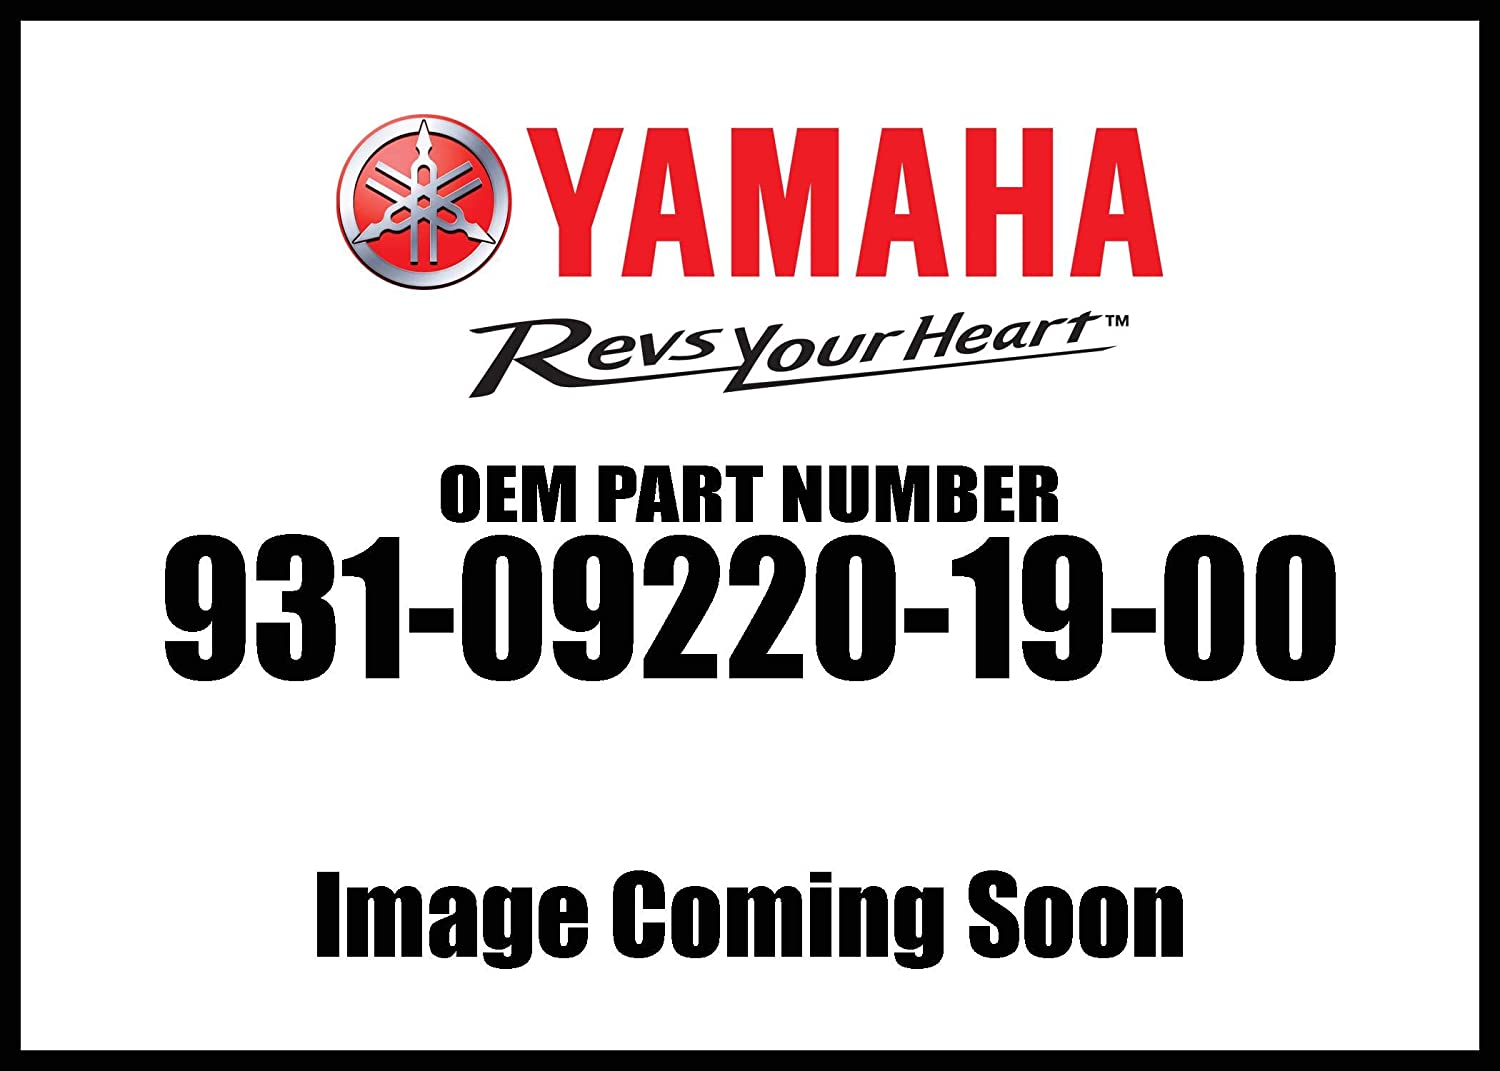 Yamaha 93109-22019-00 Oil Seal, Sdo-Type; 931092201900 Made by Yamaha